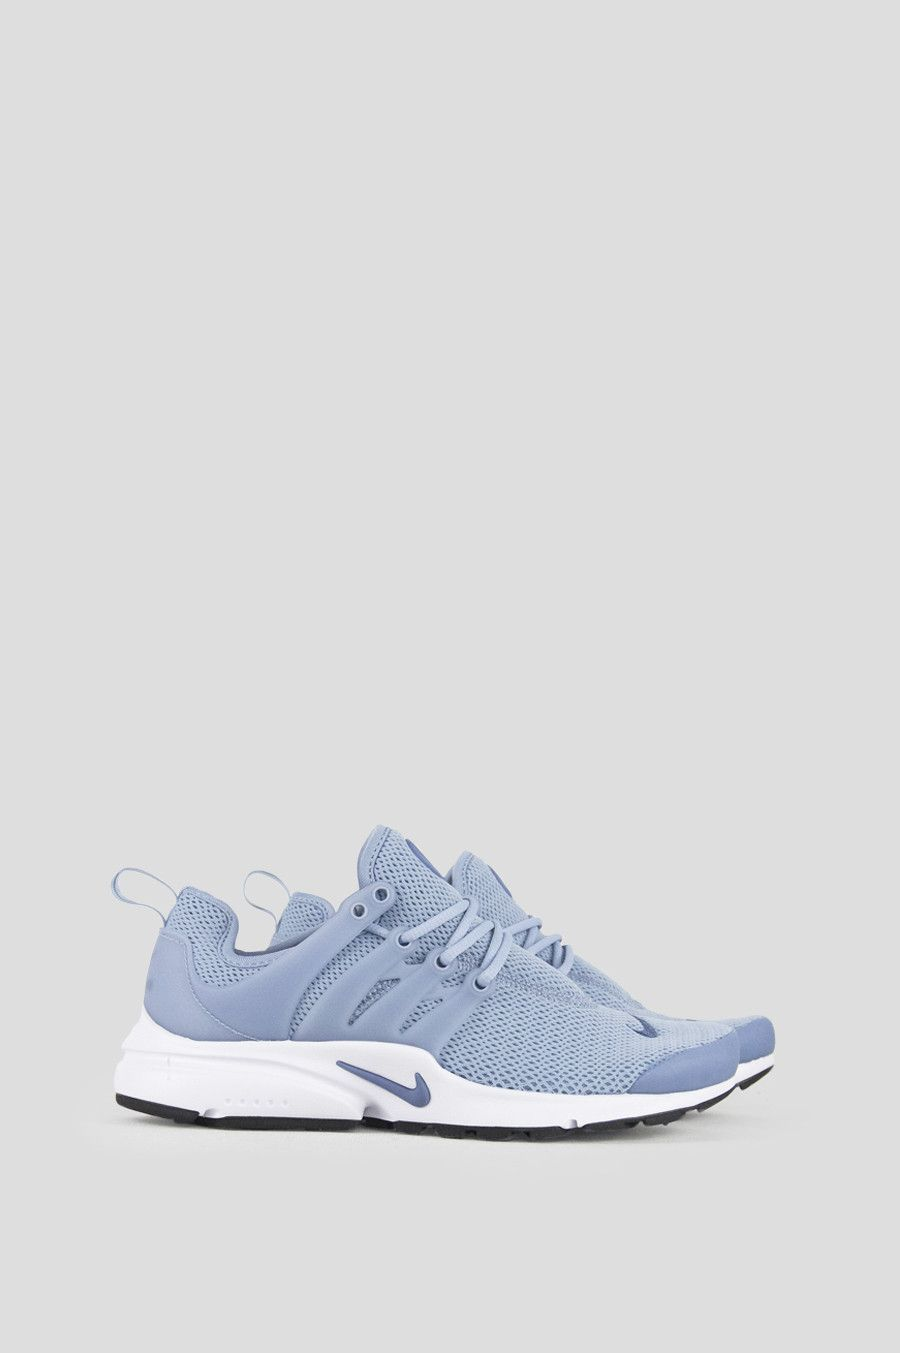 best sneakers 7c1fa 98d98 The Nike Air Presto Women's Shoe is inspired by the comfort ...